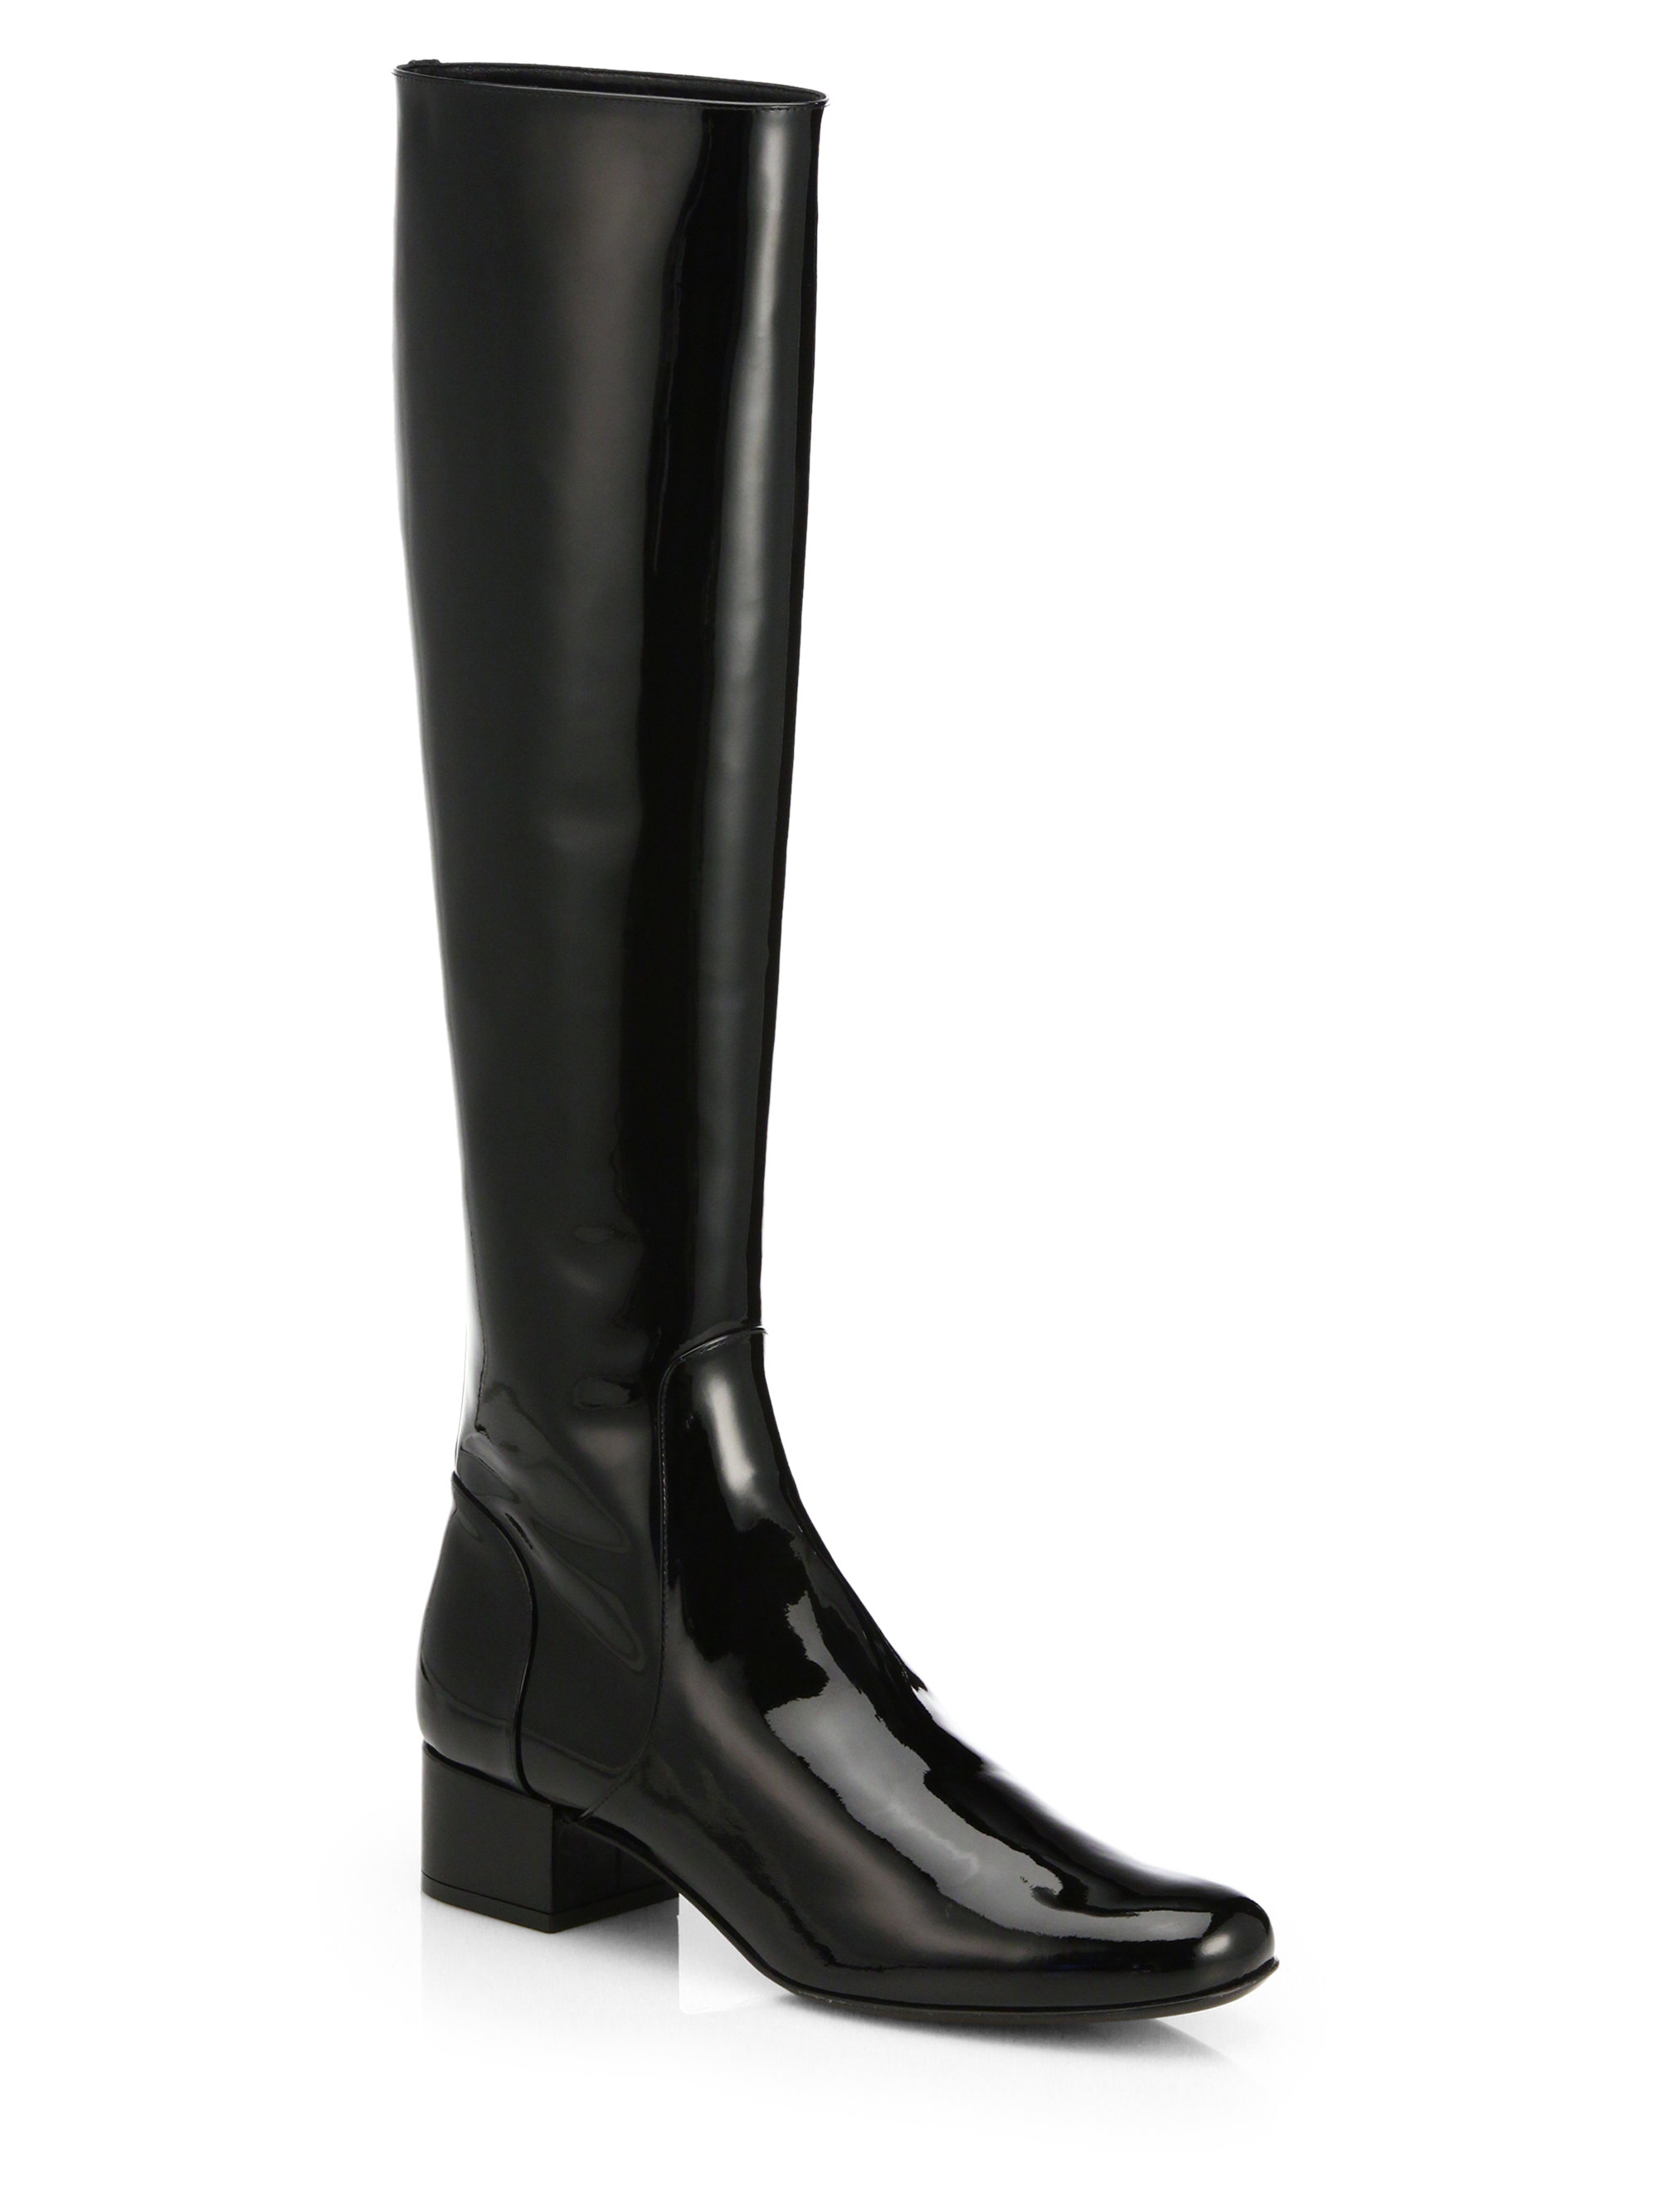 laurent patent leather kneehigh boots in black nero